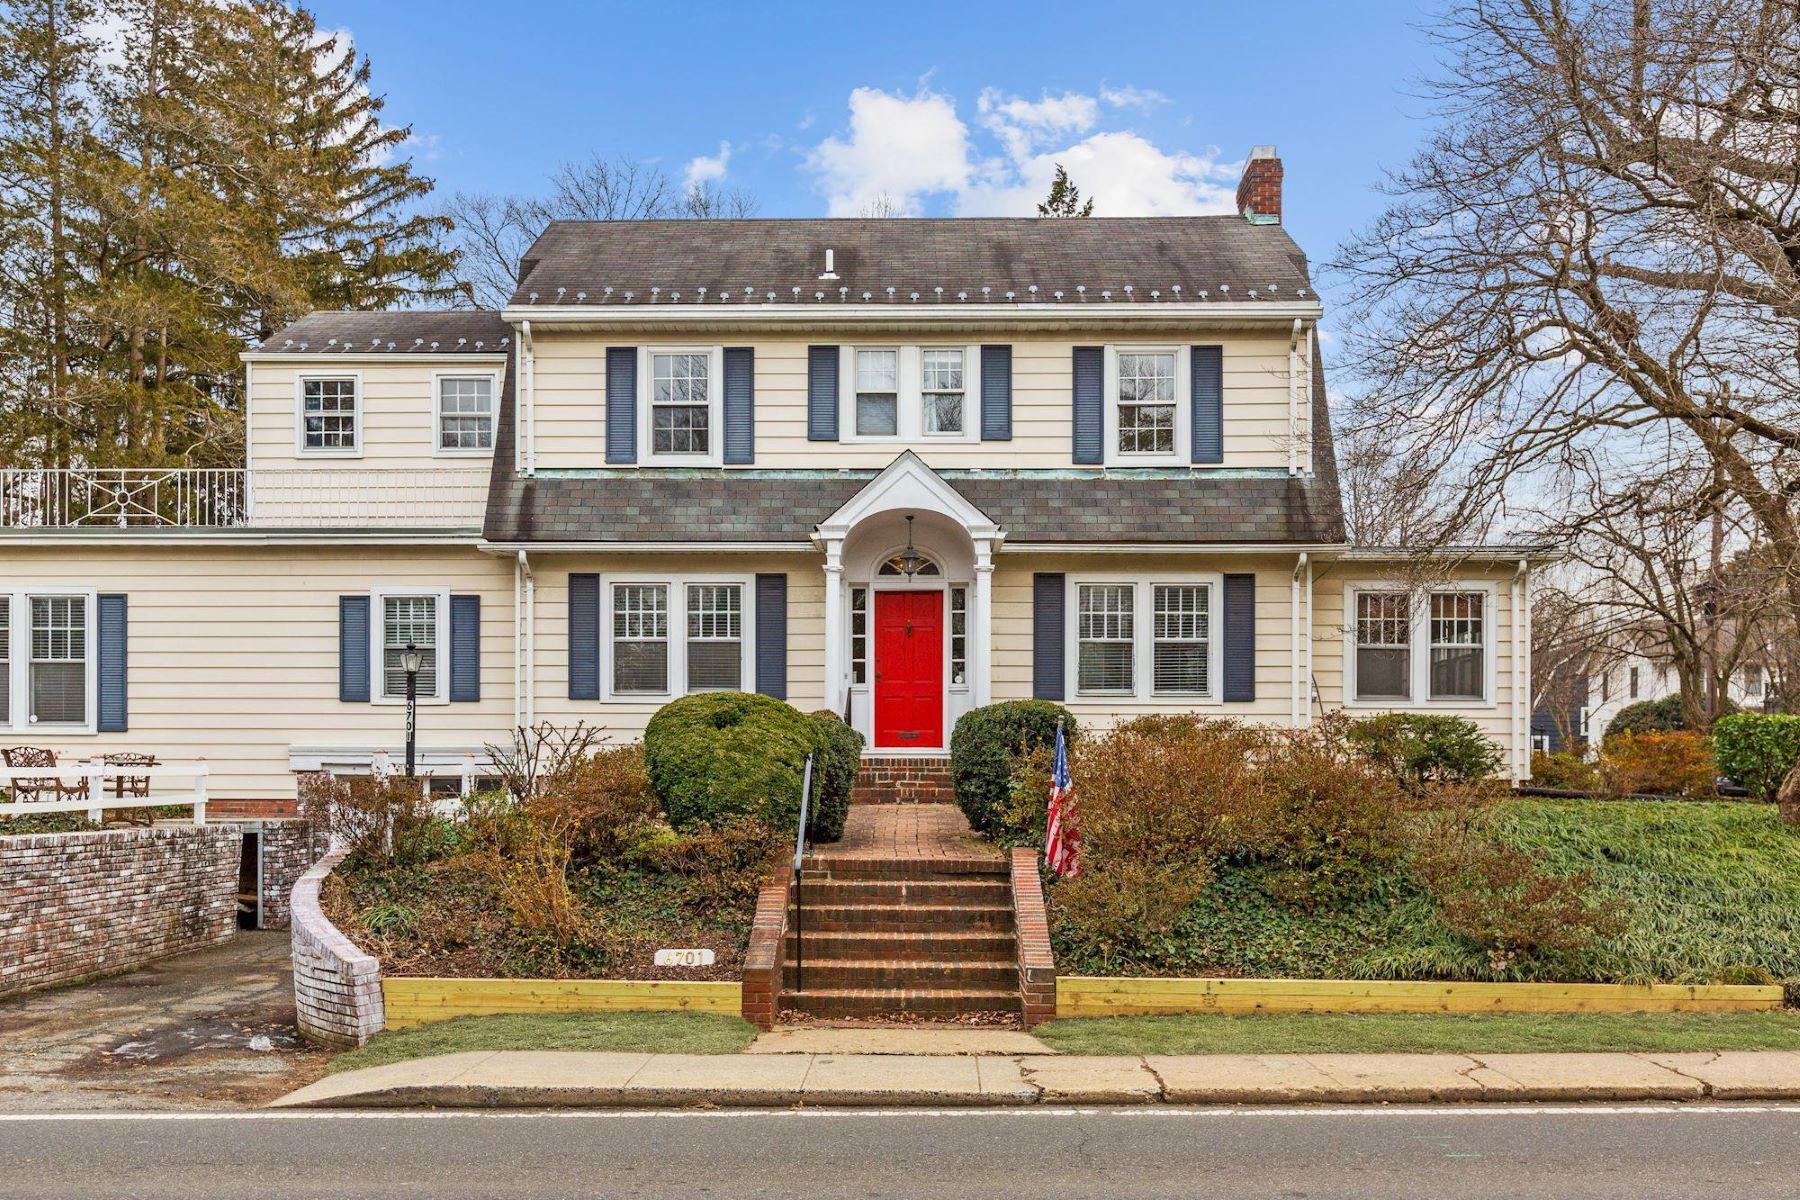 Single Family Homes for Sale at 6701 Brookville Rd Chevy Chase, Maryland 20815 United States